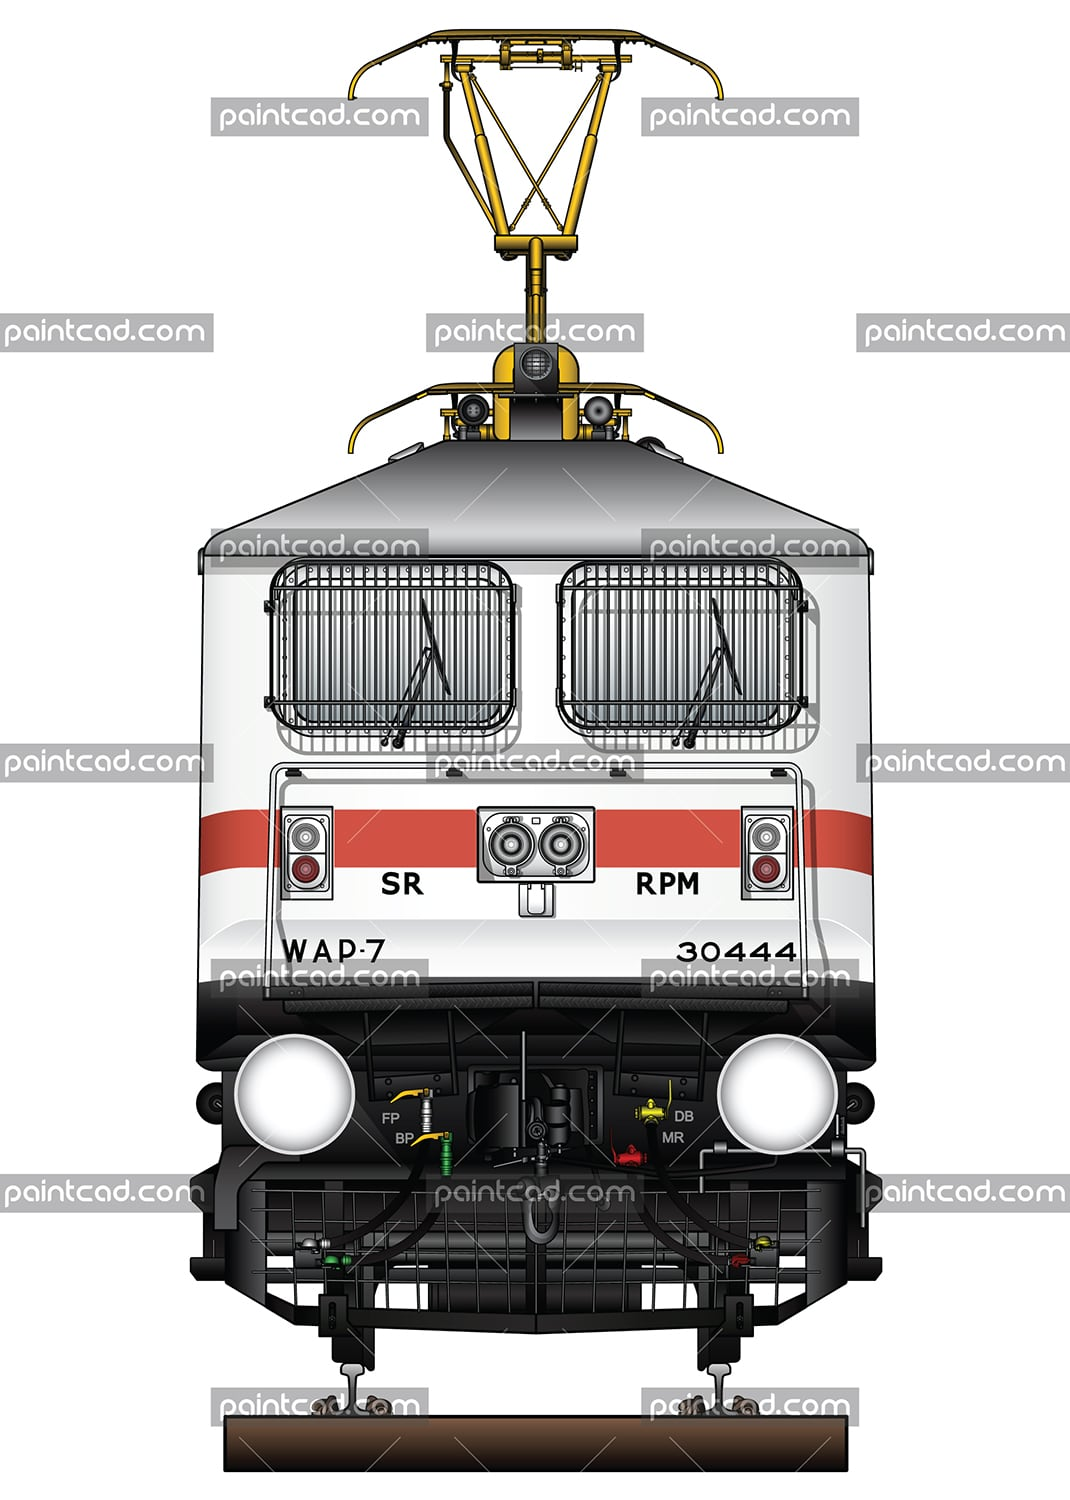 "IMPORTANT: EDITORIAL USE ONLY! Vector illustration with front view of high-speed electric locomotive WAP-7 used in Indian Railways to serve passenger trains. The engine is equipped with pantograph WBL-85 for high speeds, AAR tightlock couplers and chain link couplers. Abbreviation WAP-7 mean: W - Broad Gauge, A – AC electric traction, P – Passenger and ""7"" - the serial number of the modification of locomotive. Detailed color drawing with all technical inscriptions. Isolated object over white background."